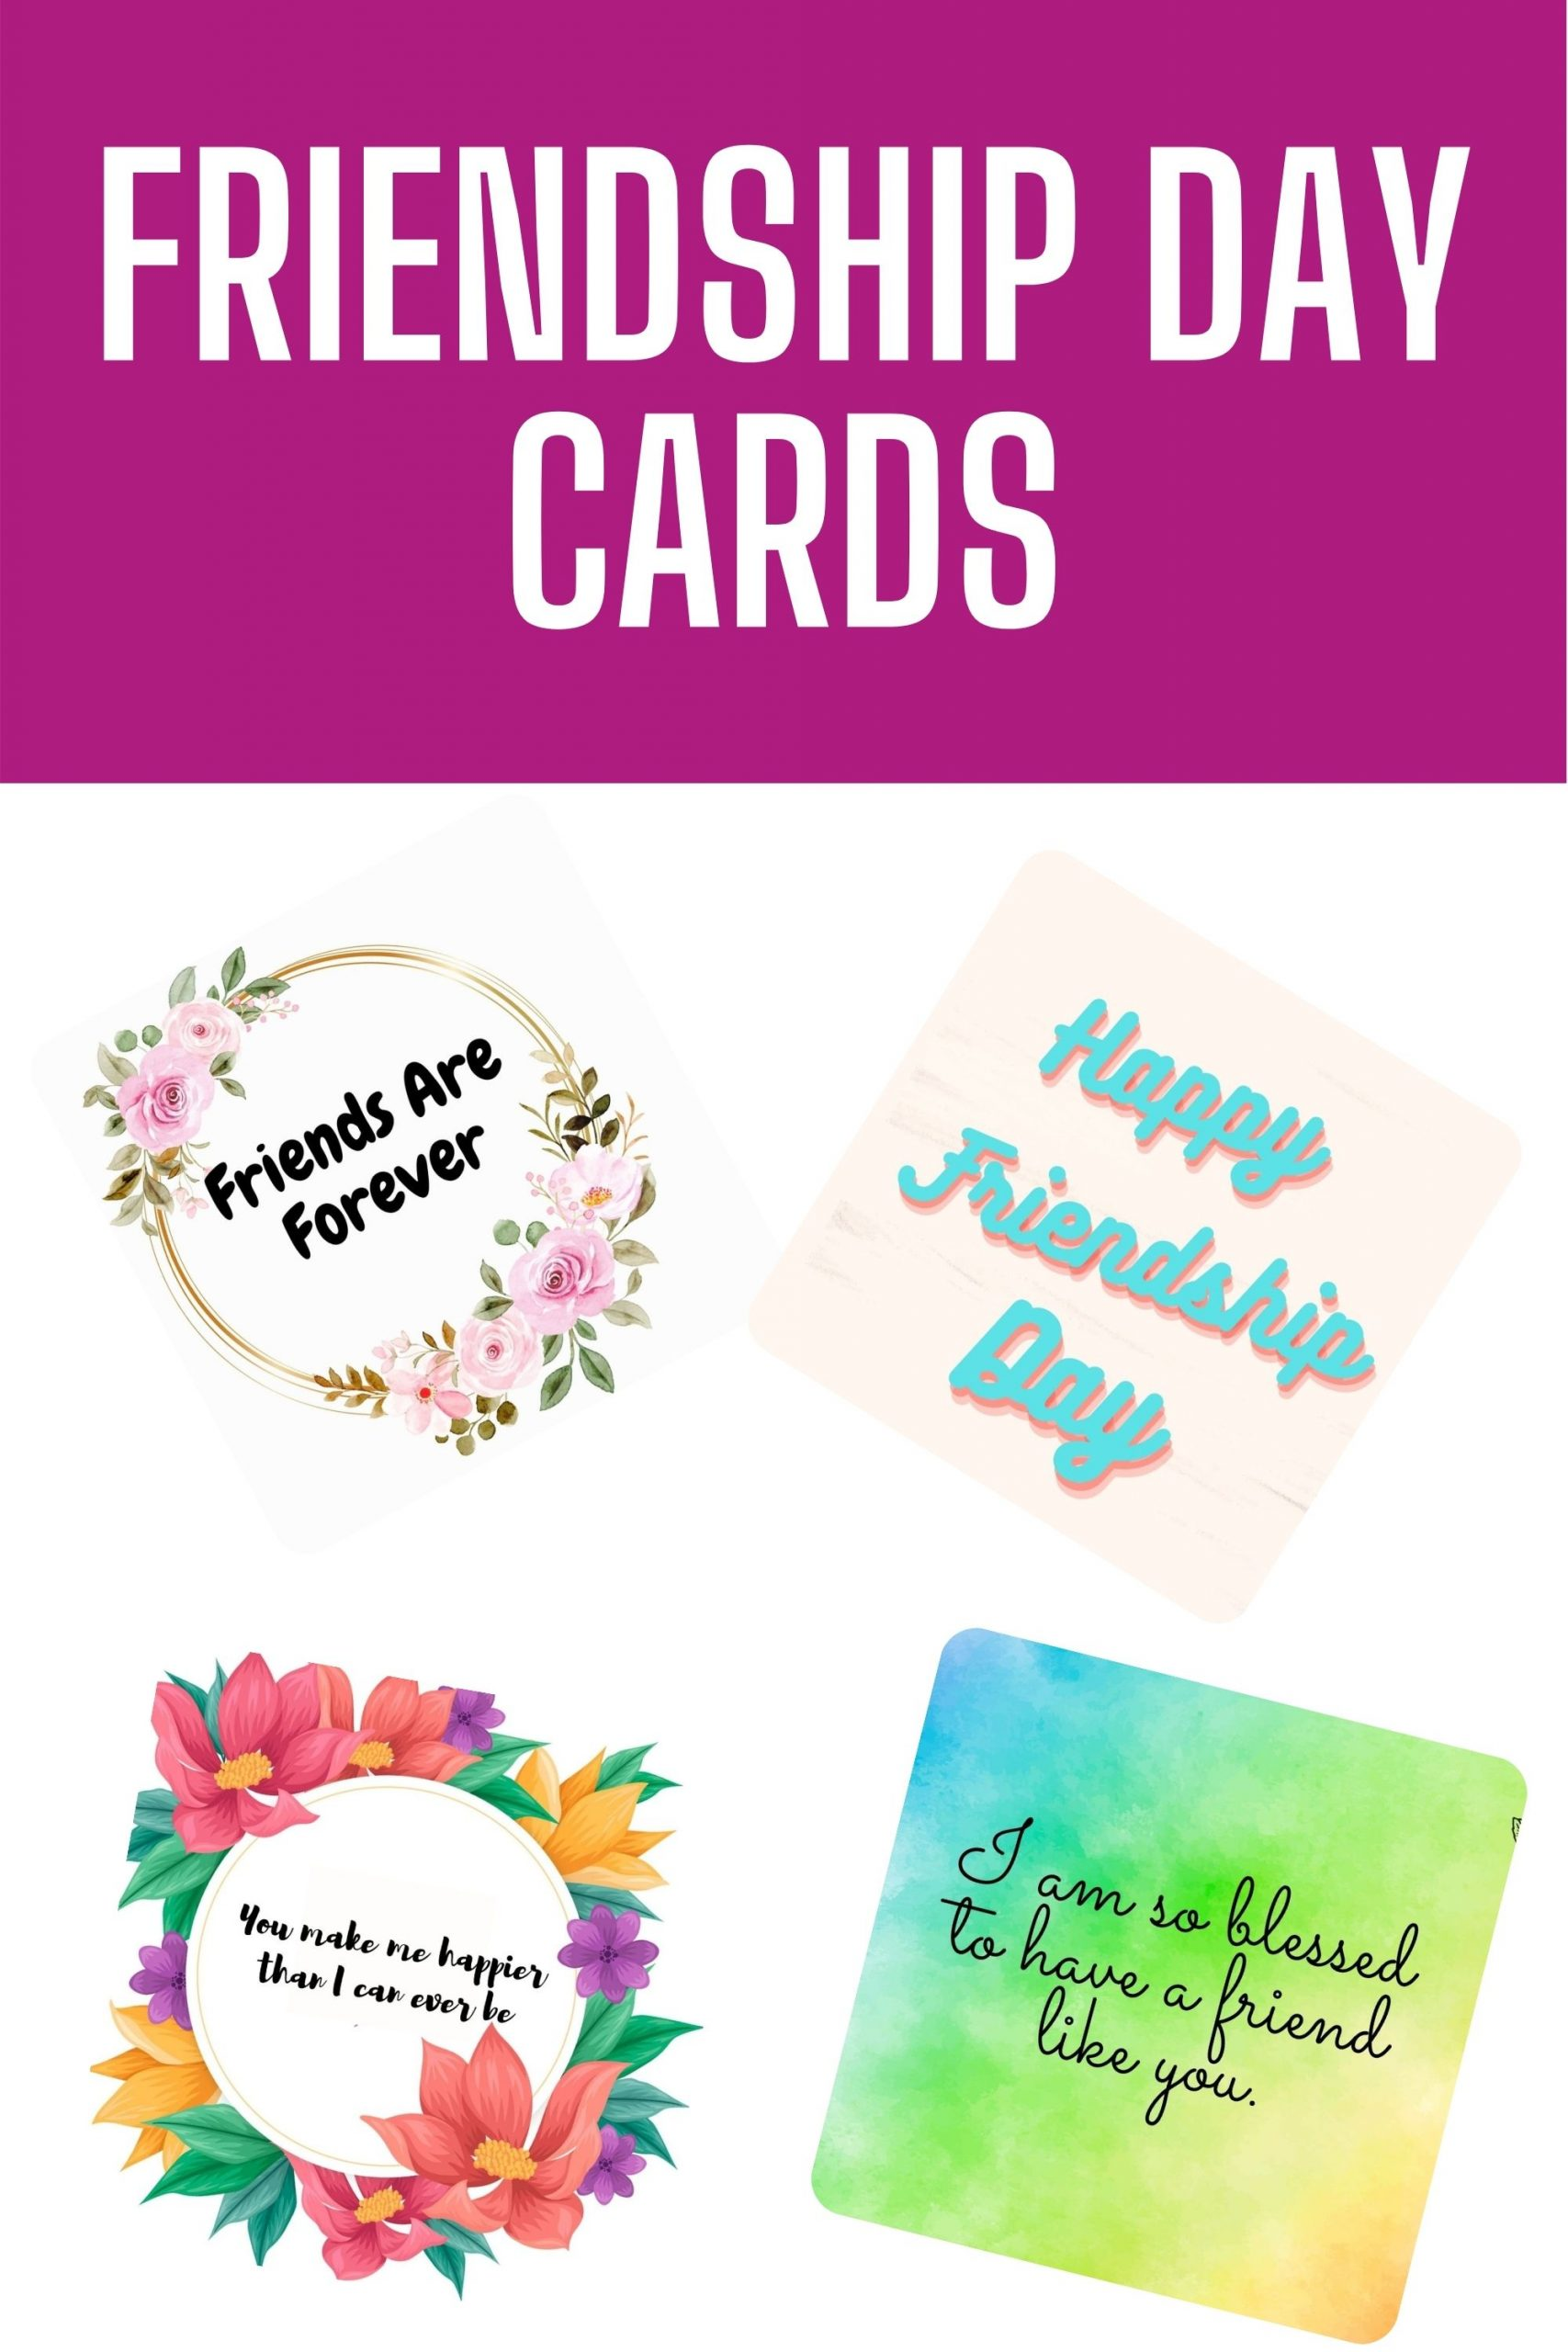 Friendship Day Cards - Meaningful Cards About Friends